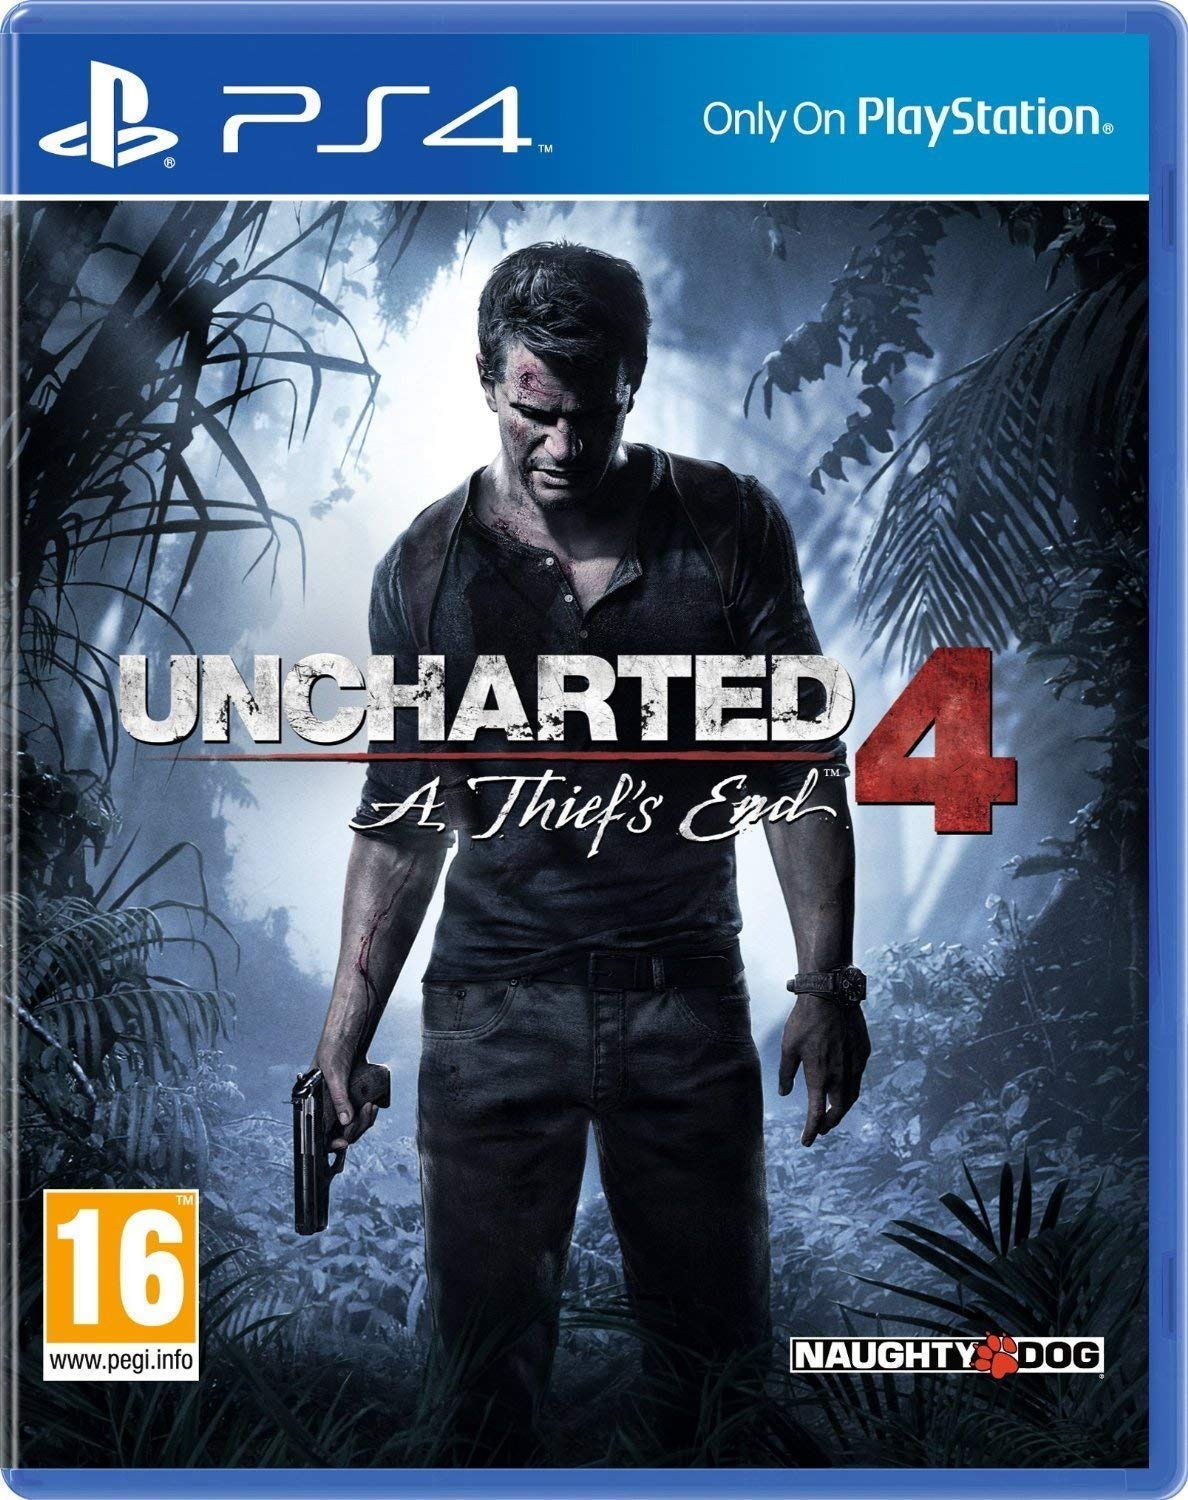 PS4 Uncharted 4: A Thief's End (Physical) - 1